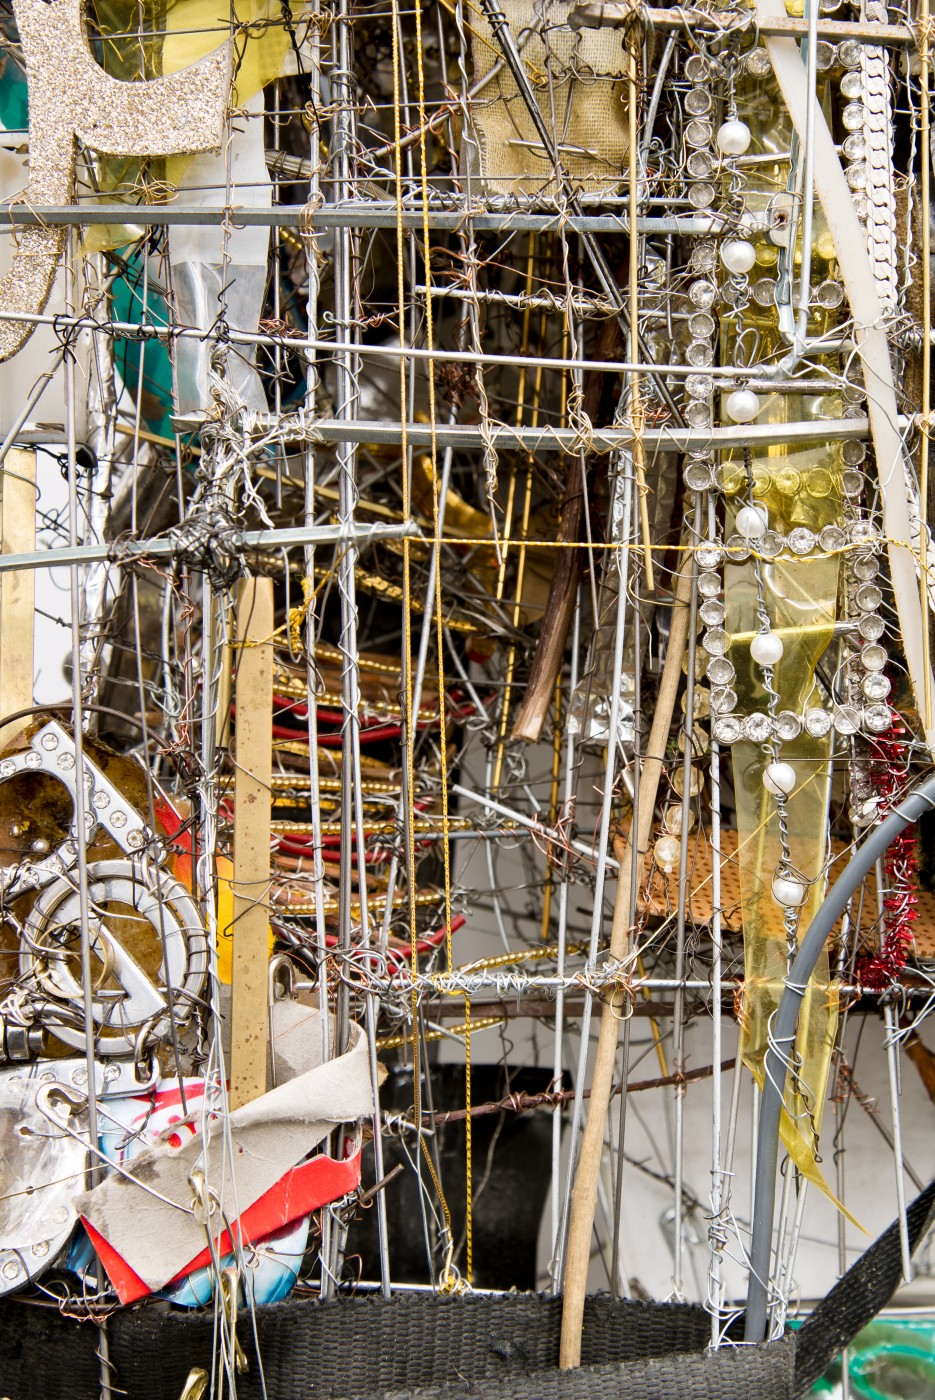 METROPOLITAN  Passion Avenue</I>, 2015 (detail) Mixed media 80 x 67 x 22 cm / 31.5 x 26.3 x 8.6 in